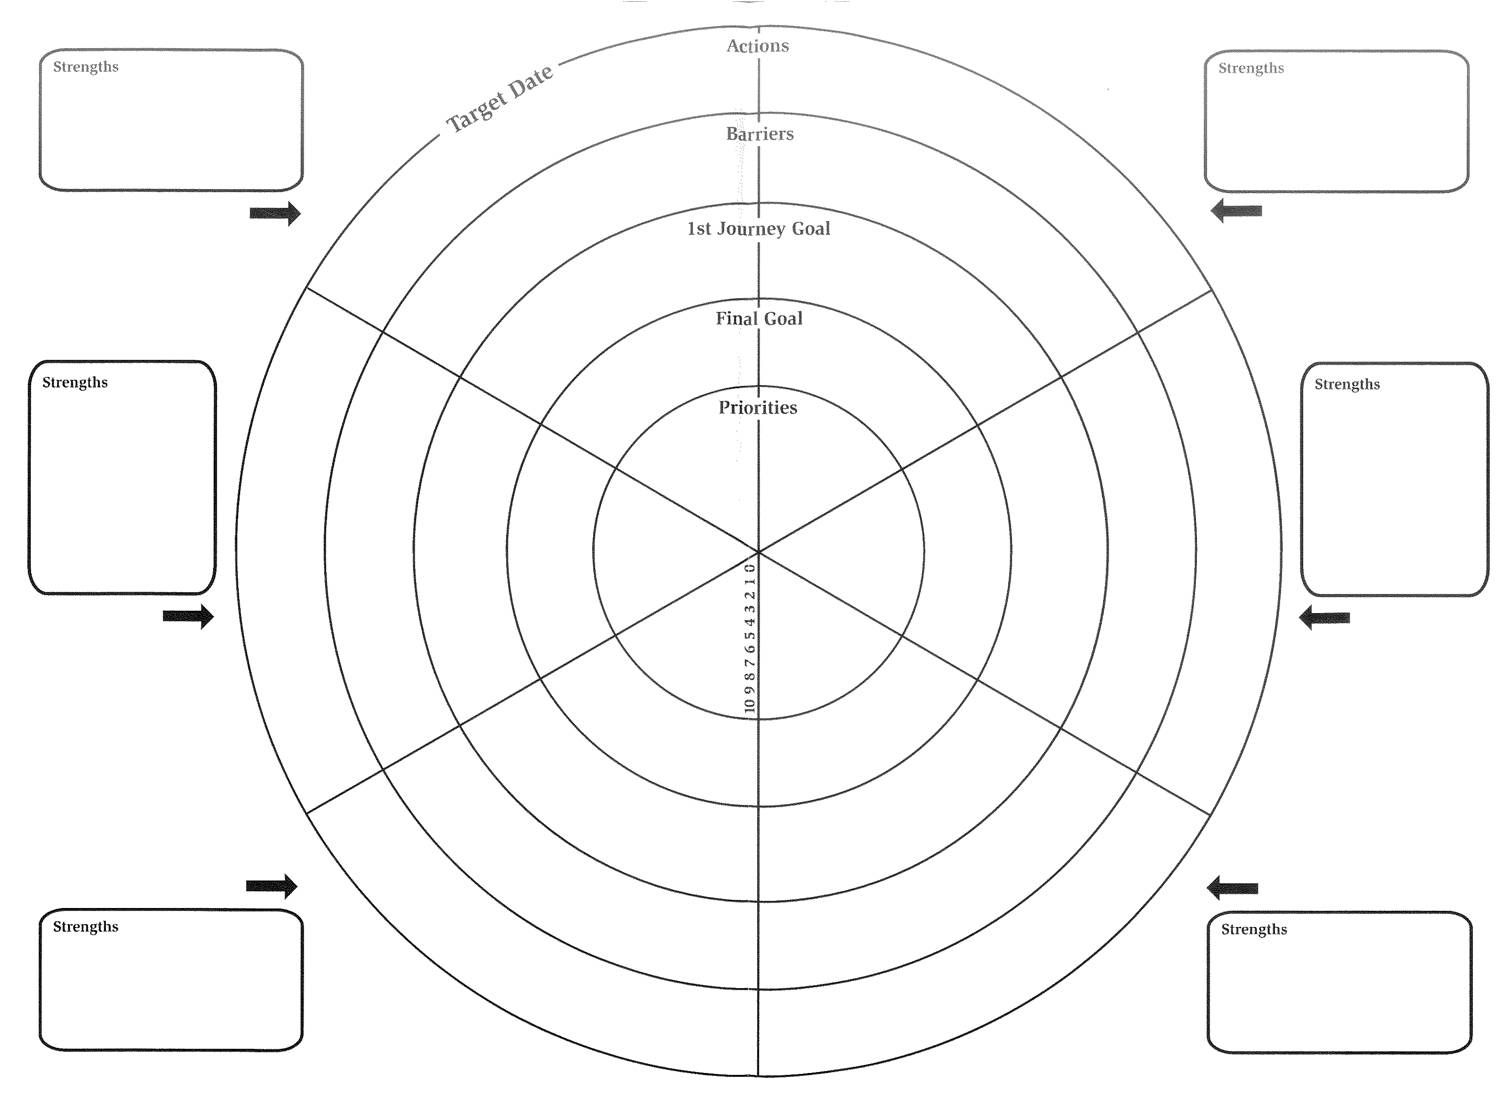 Pioneer Developing High Potential The Wheel Of Life Template Intended For Wheel Of Life Template Blank Best Wheel Of Life Best Templates Business Template